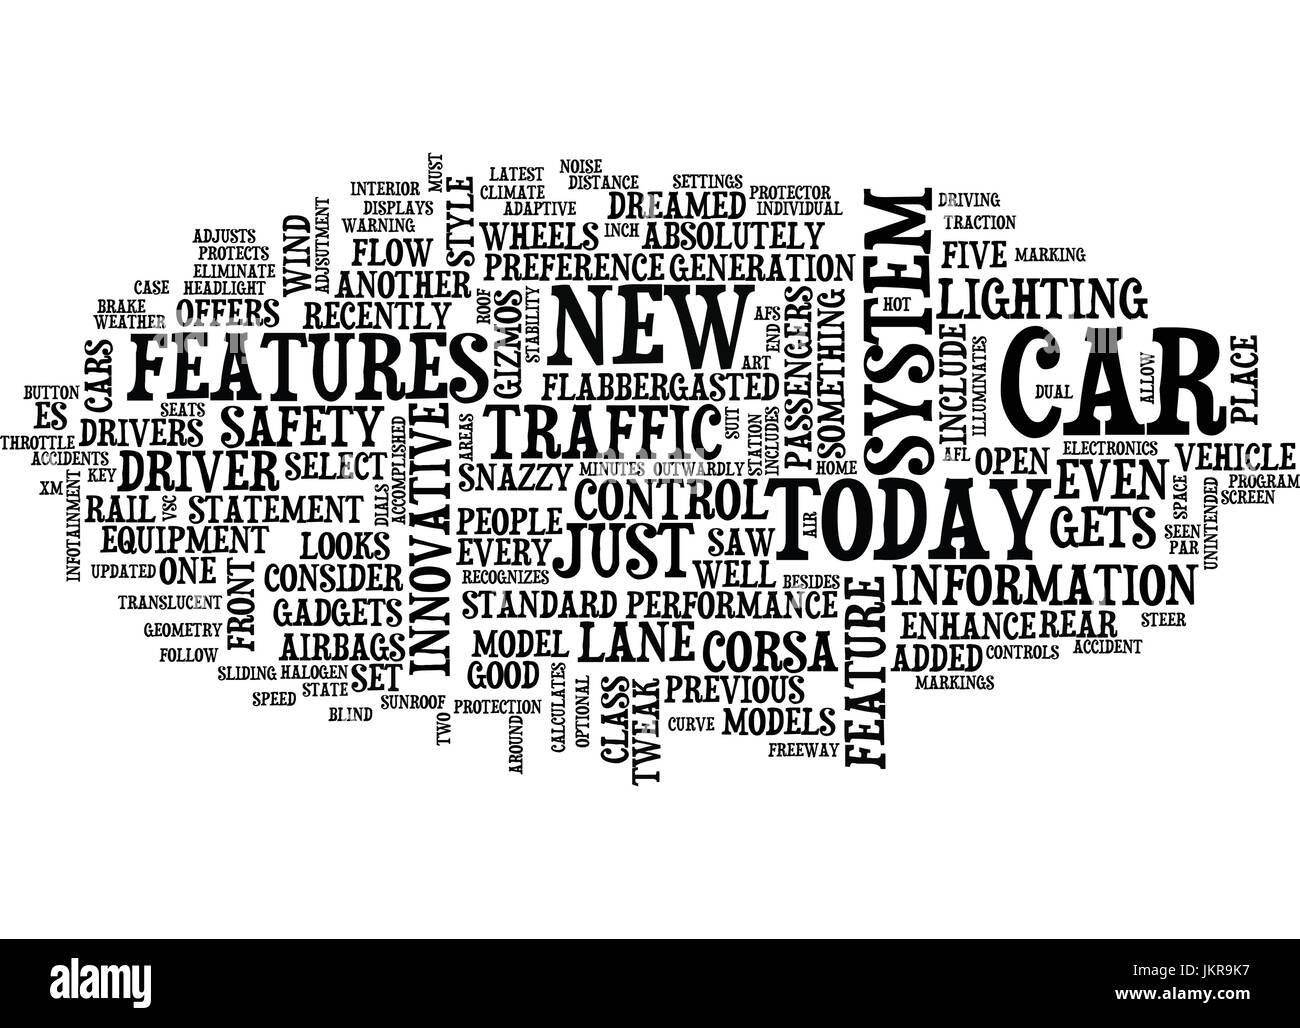 THE LATEST AND GREATEST CAR FEATURES Text Background Word Cloud Concept Stock Vector